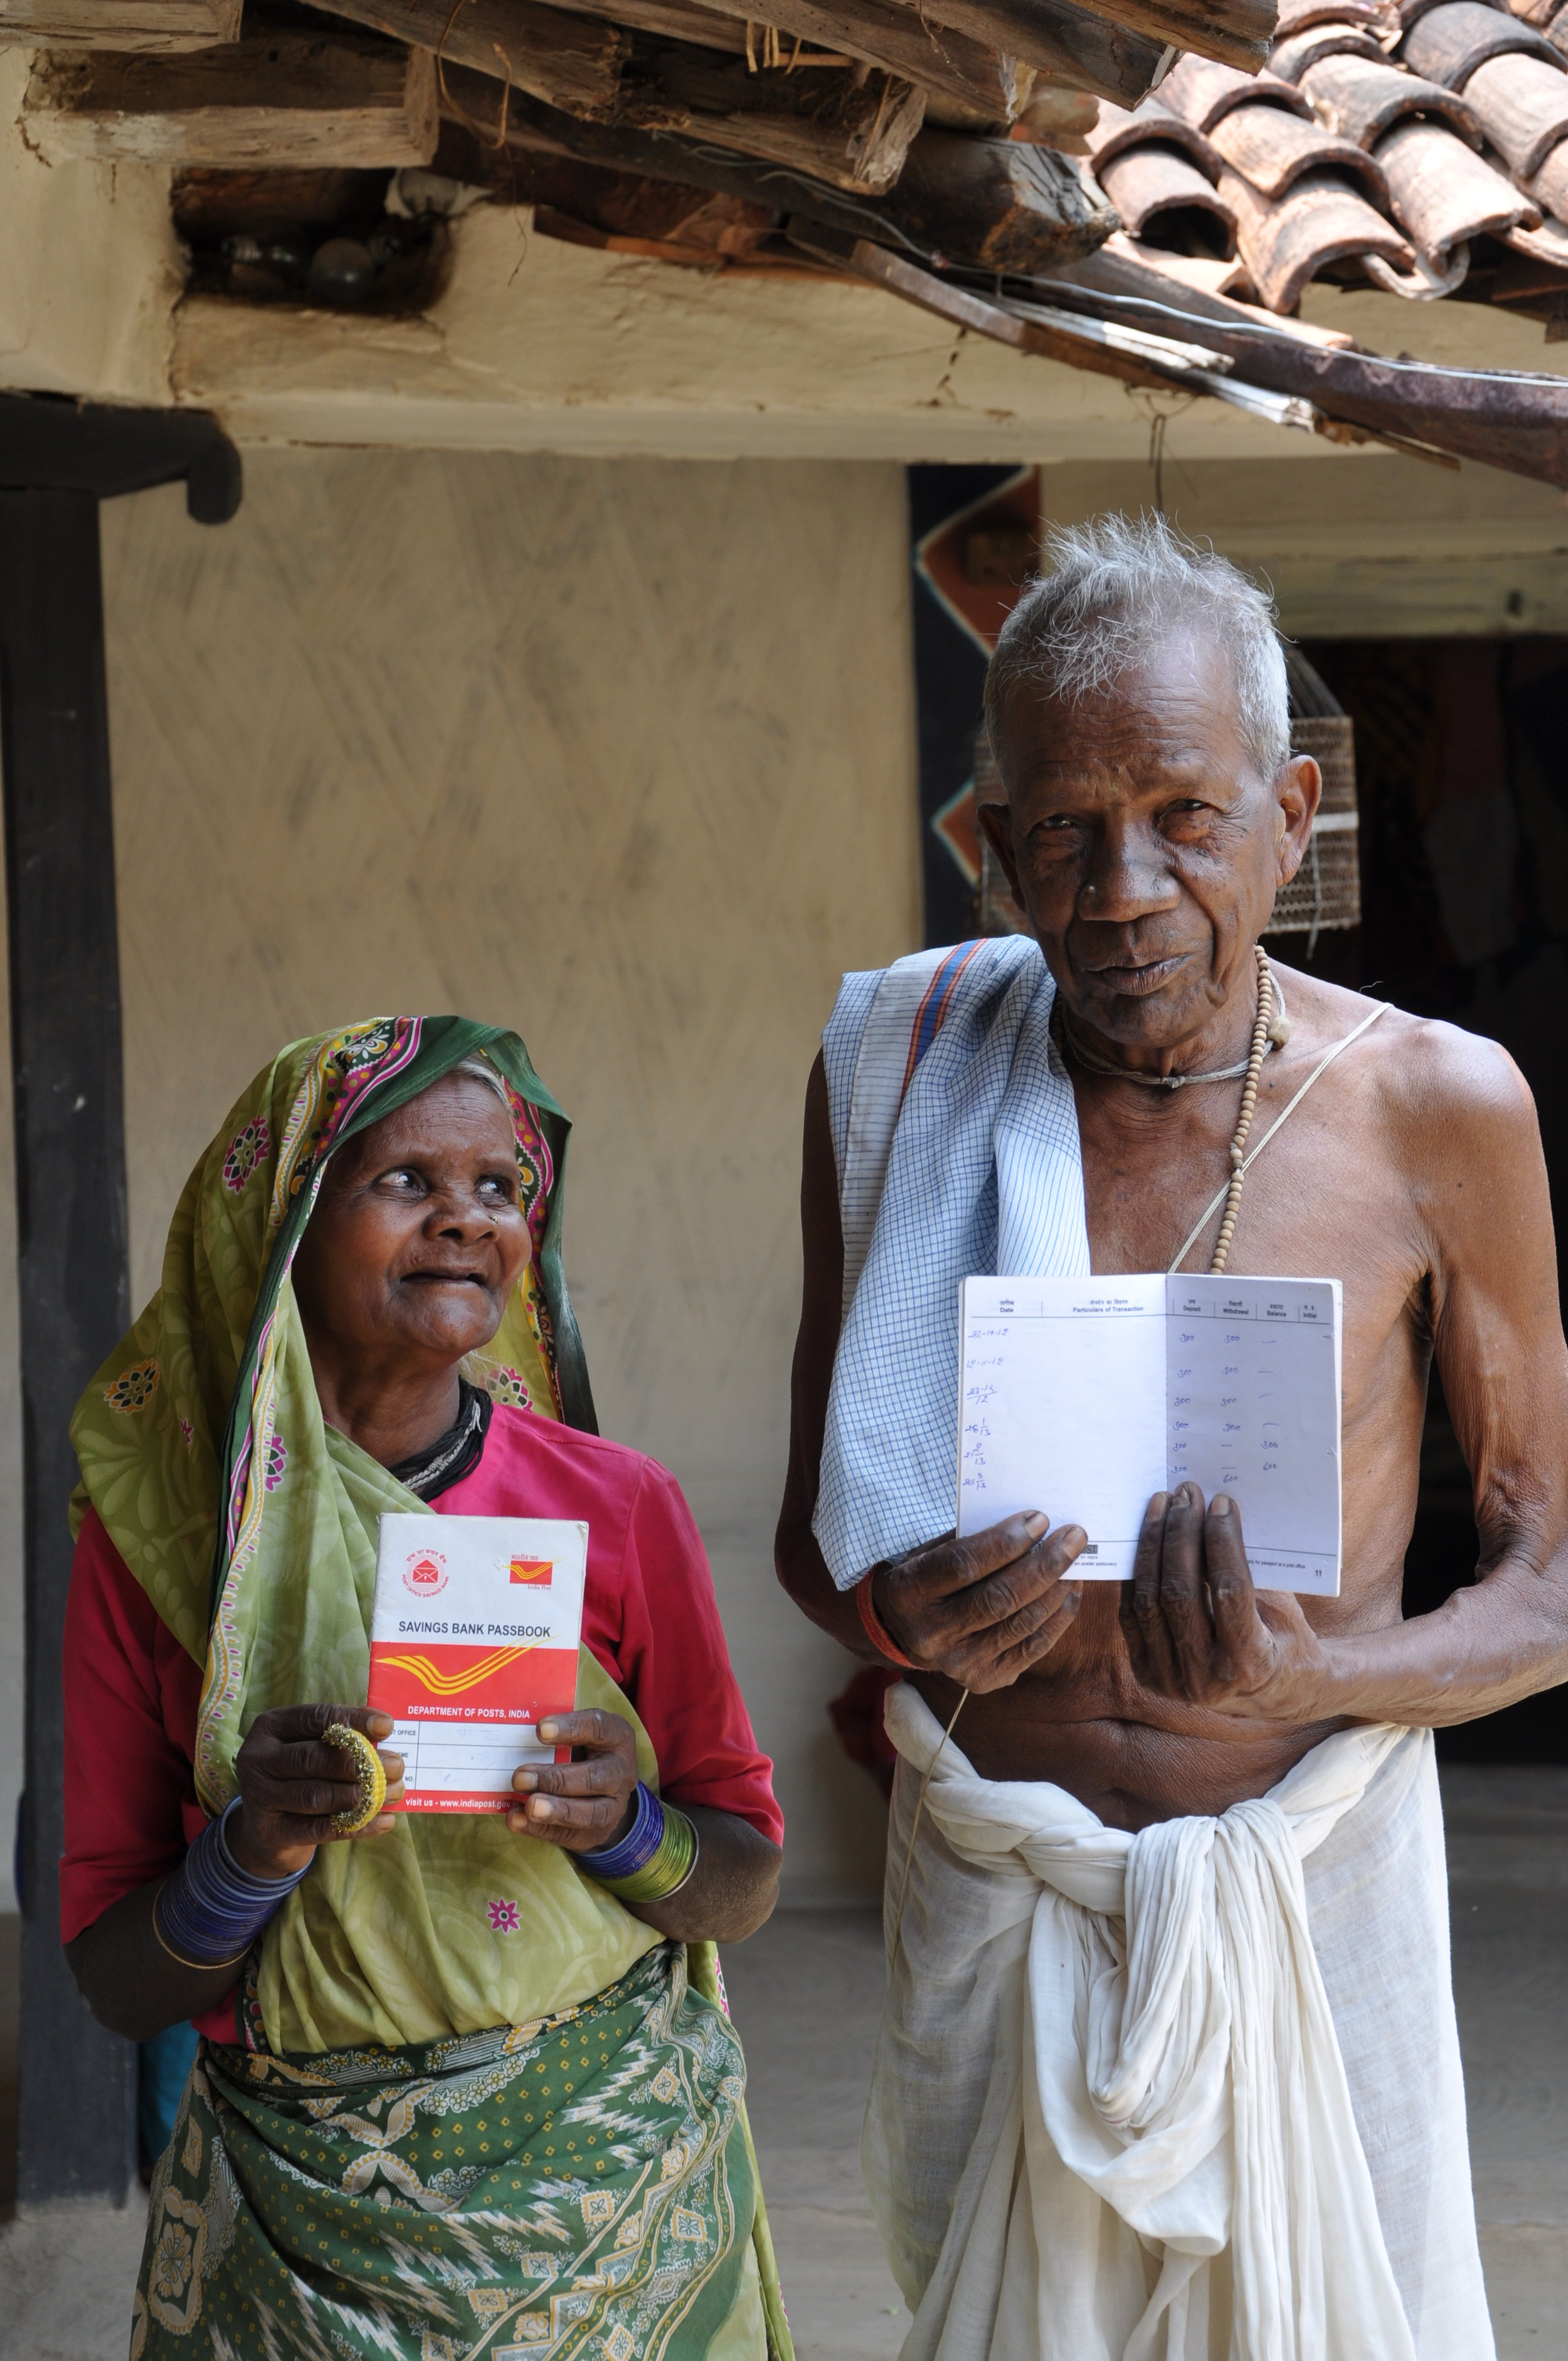 Kunti and Surajman receive monthly pensions of Rs 300 each in Sarguja, Chhattisgarh under National Social Assistance Programme. Central government has frozen pension coverage at 25% of what it should be, and not increased its contribution of Rs 200/monthly since 2006.